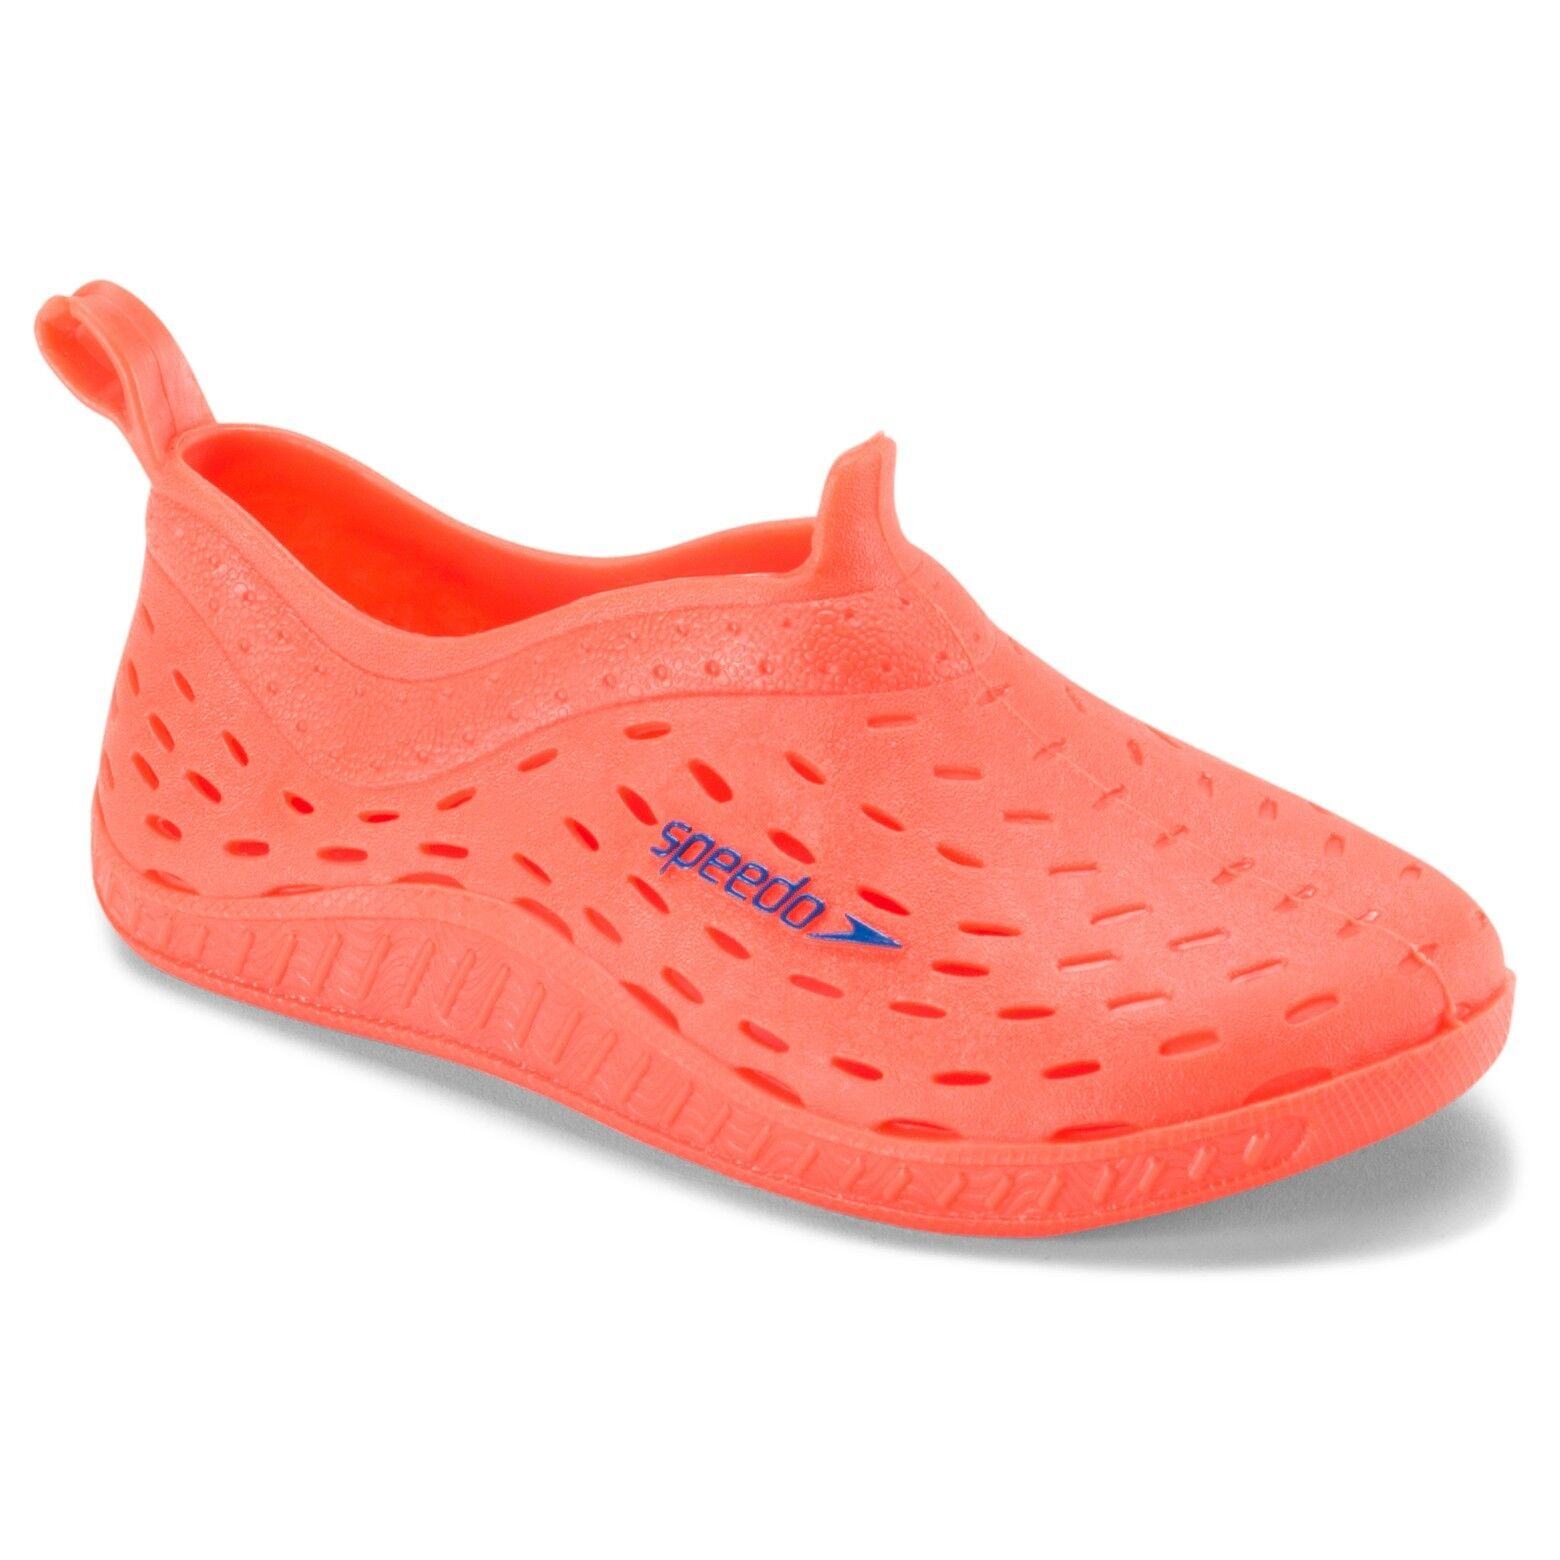 Speedo Toddler Jellies Water Shoes CHECK FOR SIZE AND COLOR